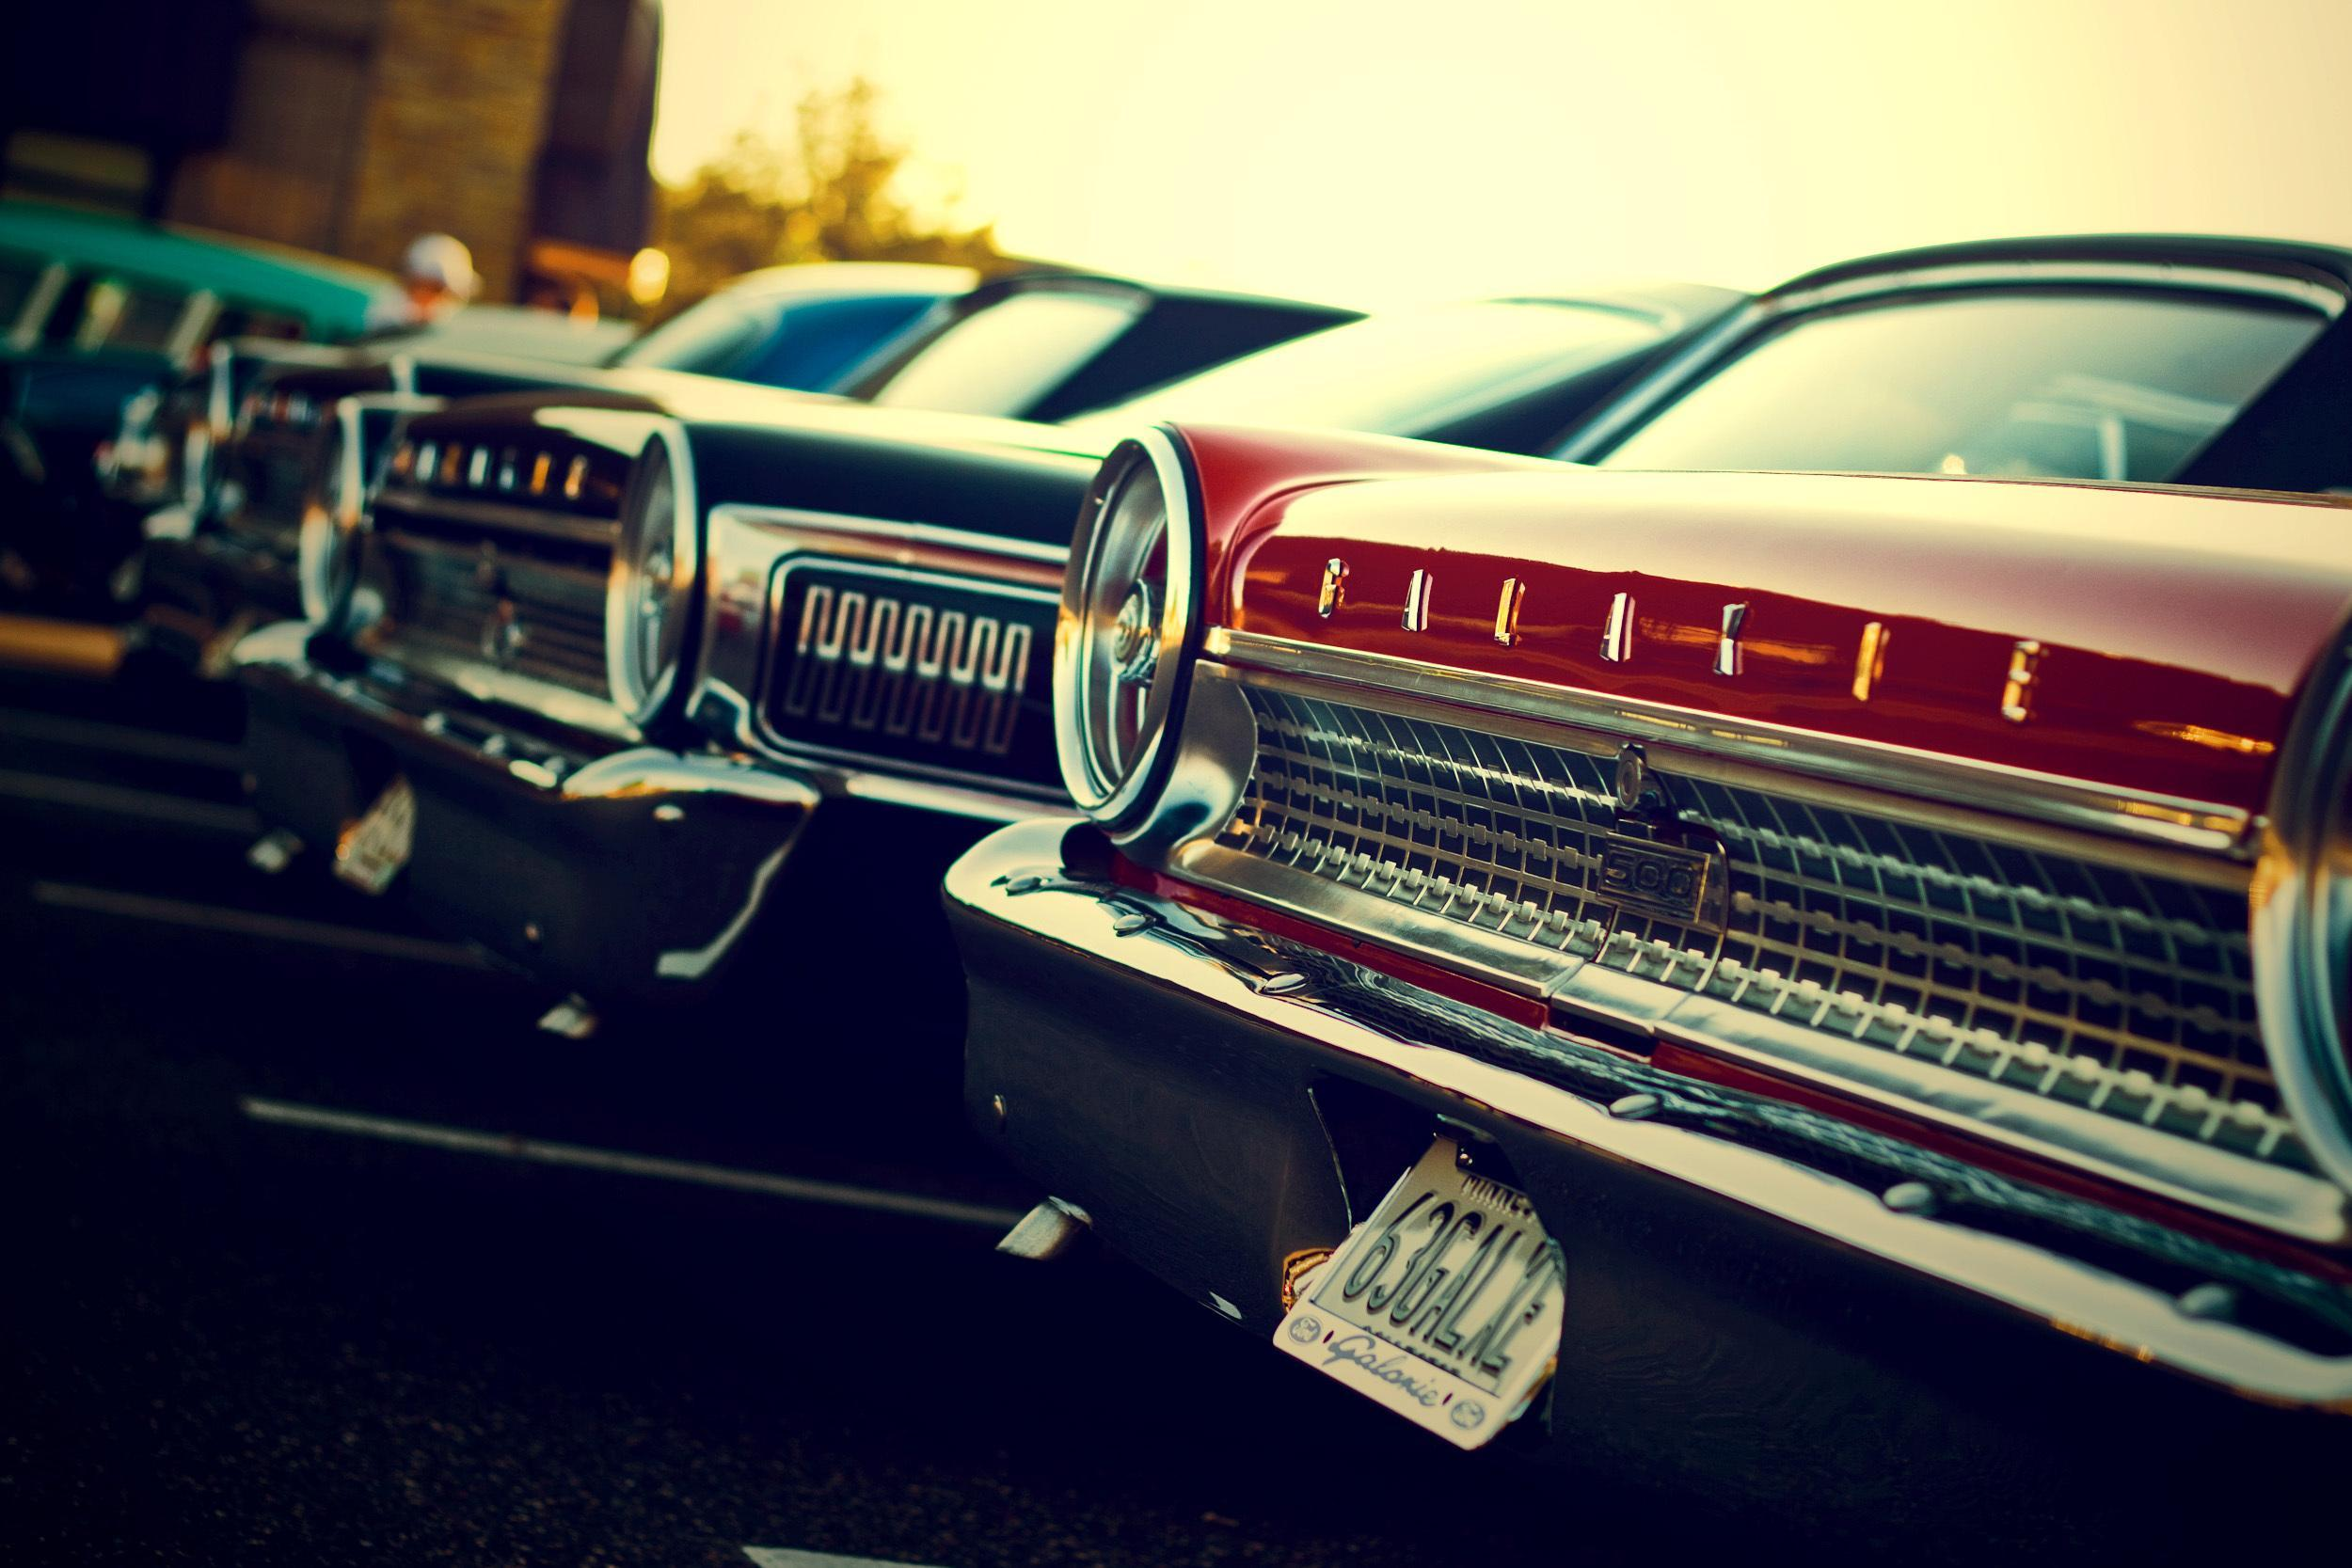 Ford Galaxie 500 Wallpapers 2 - 2500 X 1667 | stmed.net